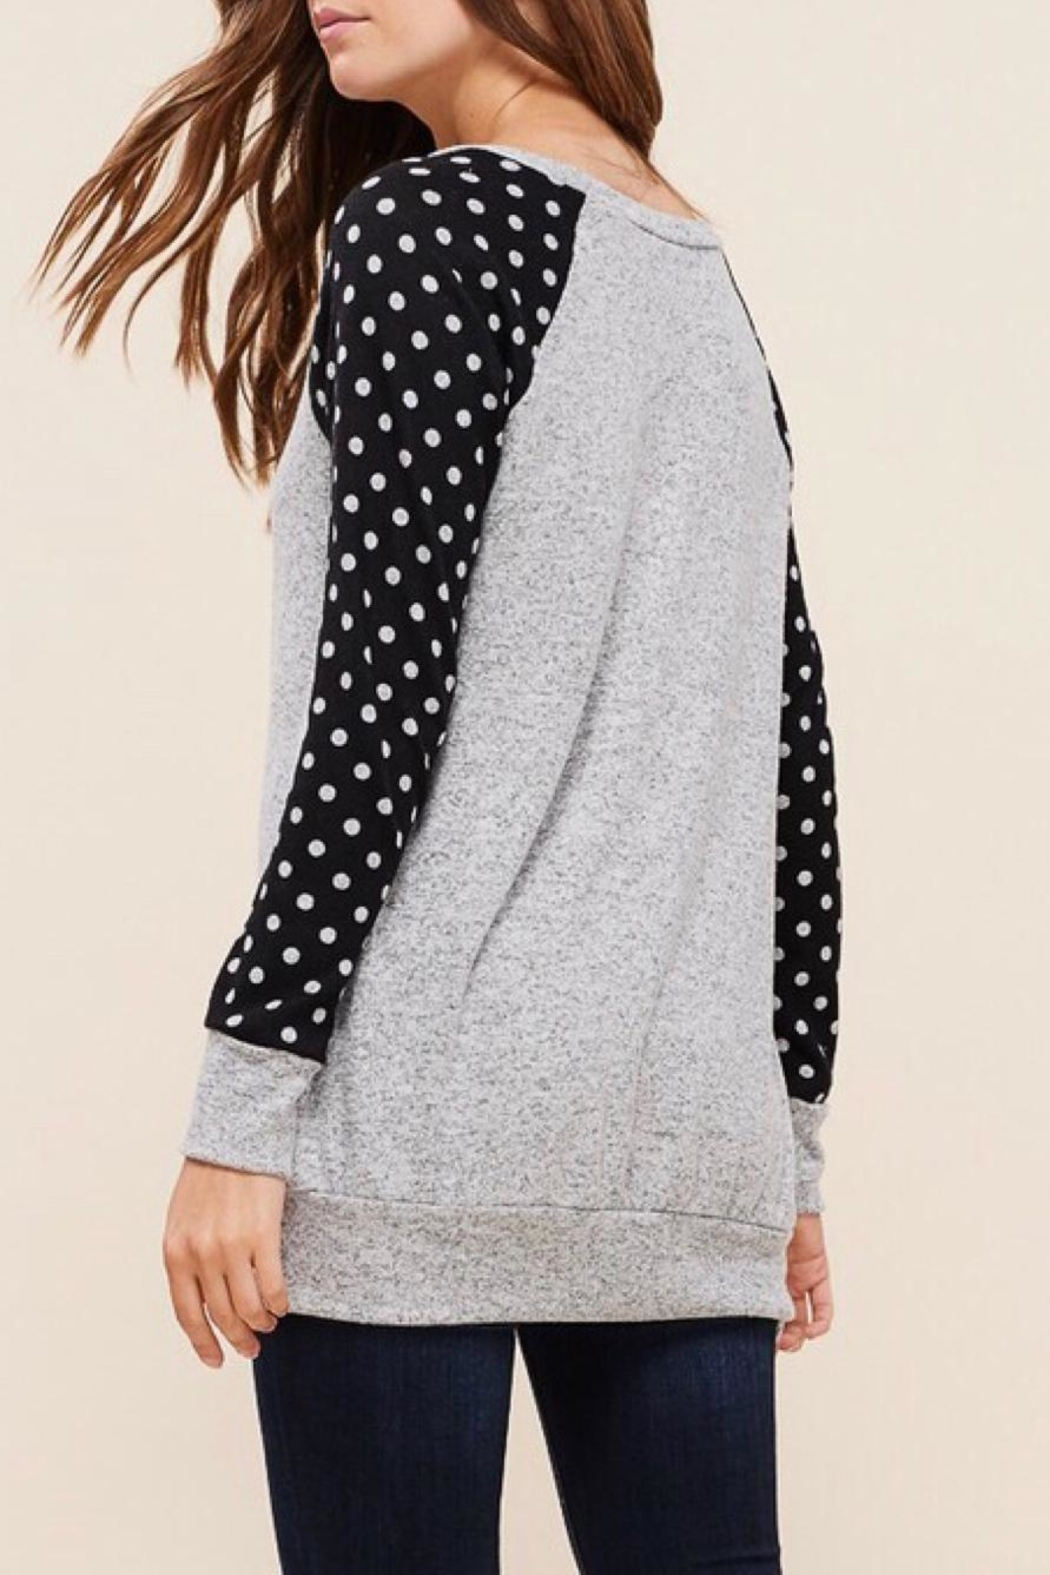 LuLu's Boutique Polka-Dot Sleeve Top - Side Cropped Image